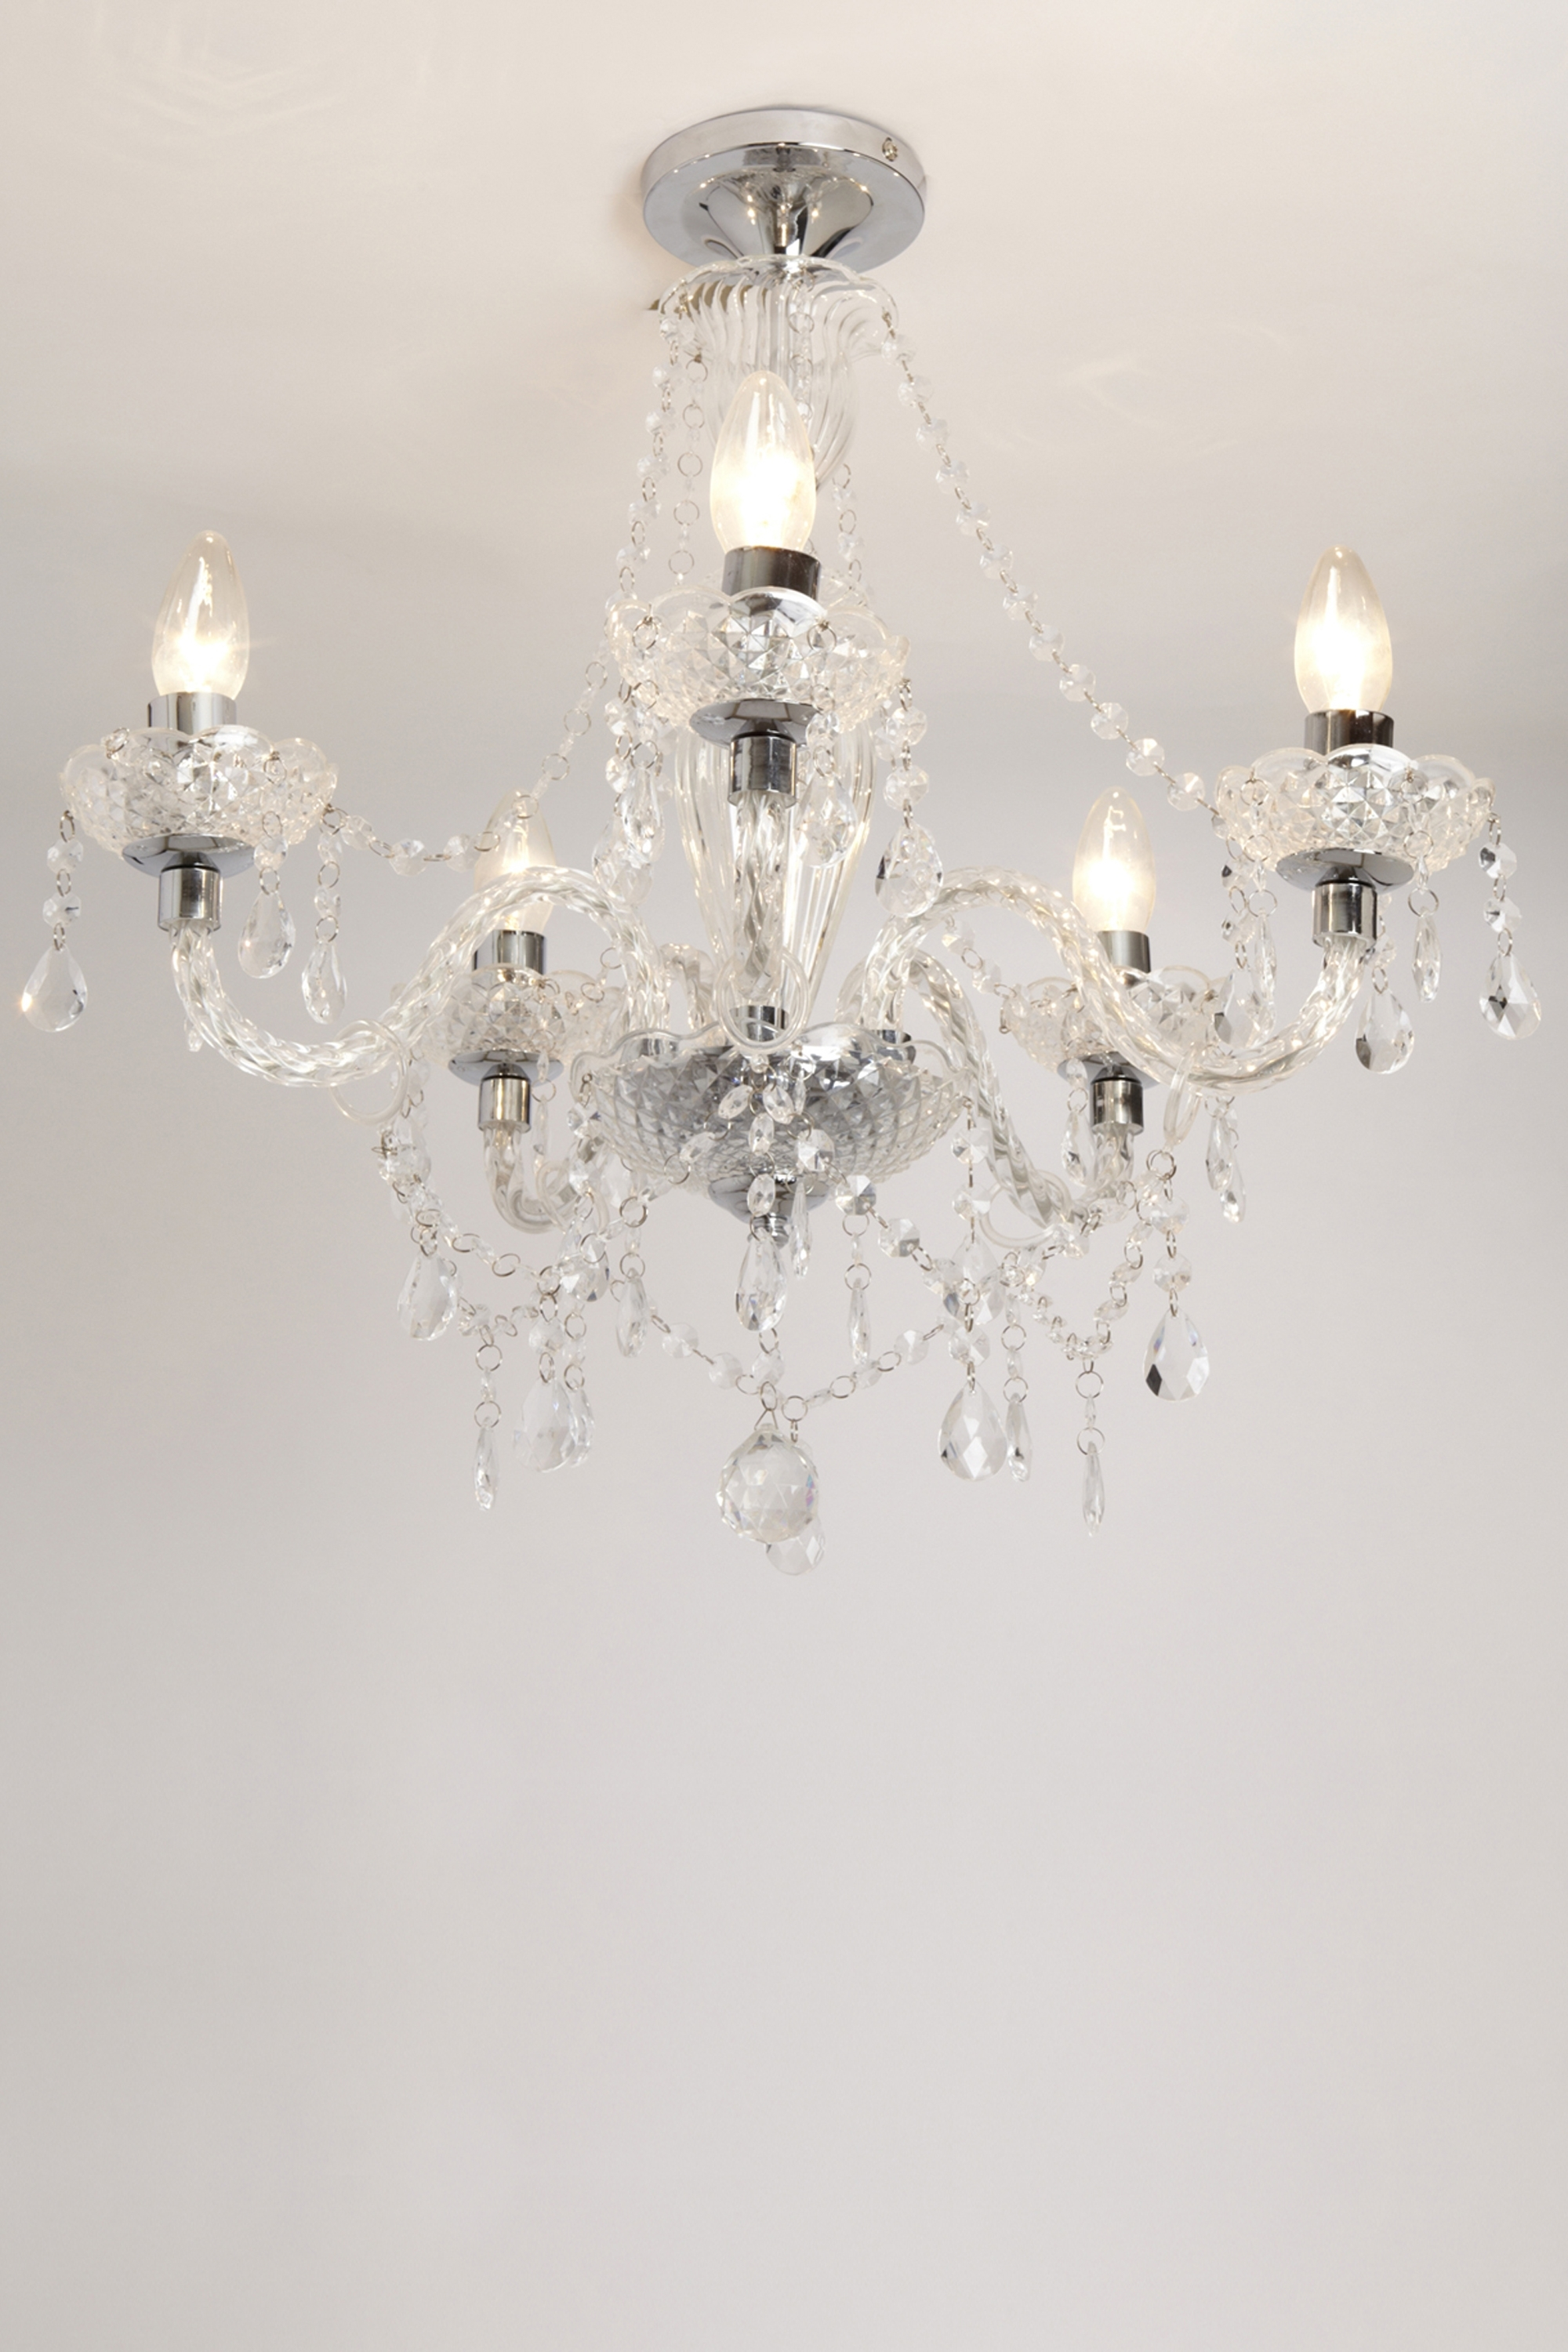 Sapparia 5 Light Flush Chandelier Bhs, £60 (was £120), Living For Most Recent Flush Chandelier (View 8 of 20)